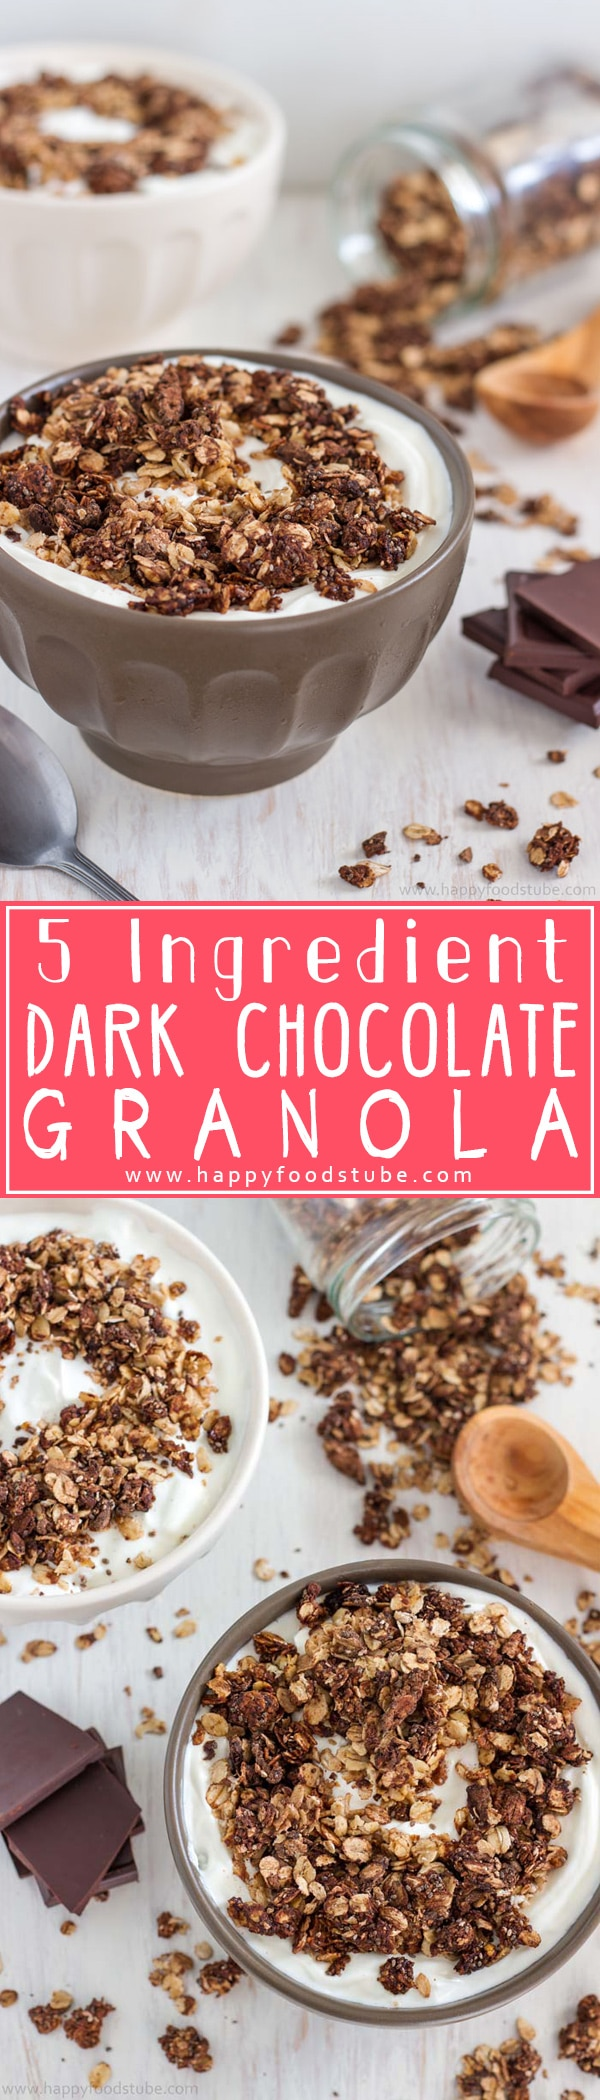 Homemade 5 Ingredient Dark Chocolate Granola Recipe. This healthy breakfast or snack is also gluten free & nut free